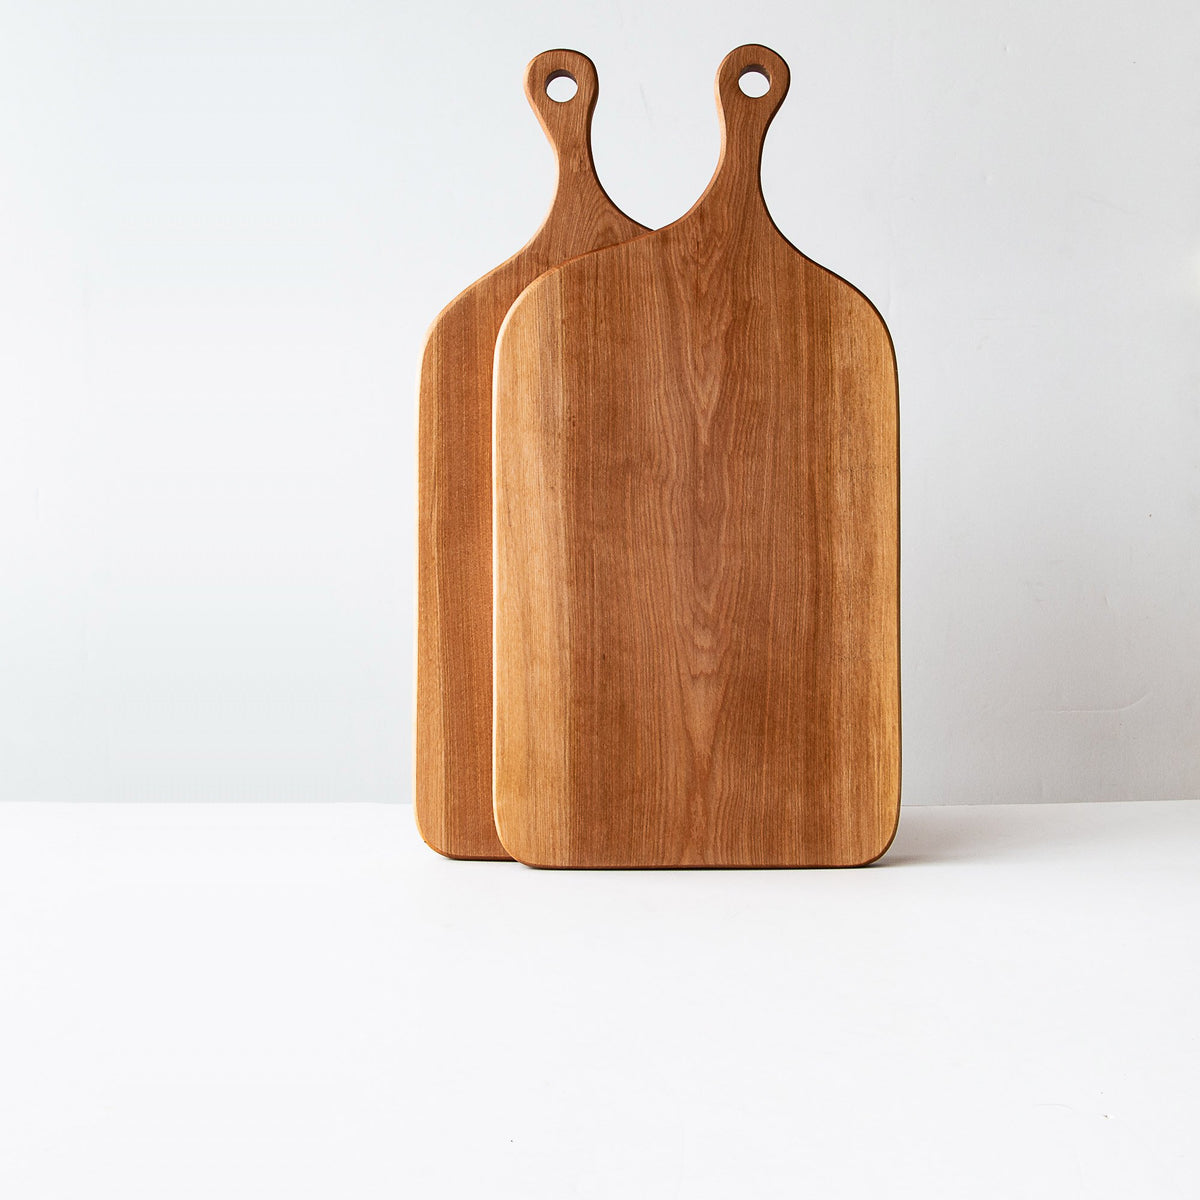 Muskoka N°5 - Two Large Handmade Serving Boards in Birch - Sold by Chic & Basta